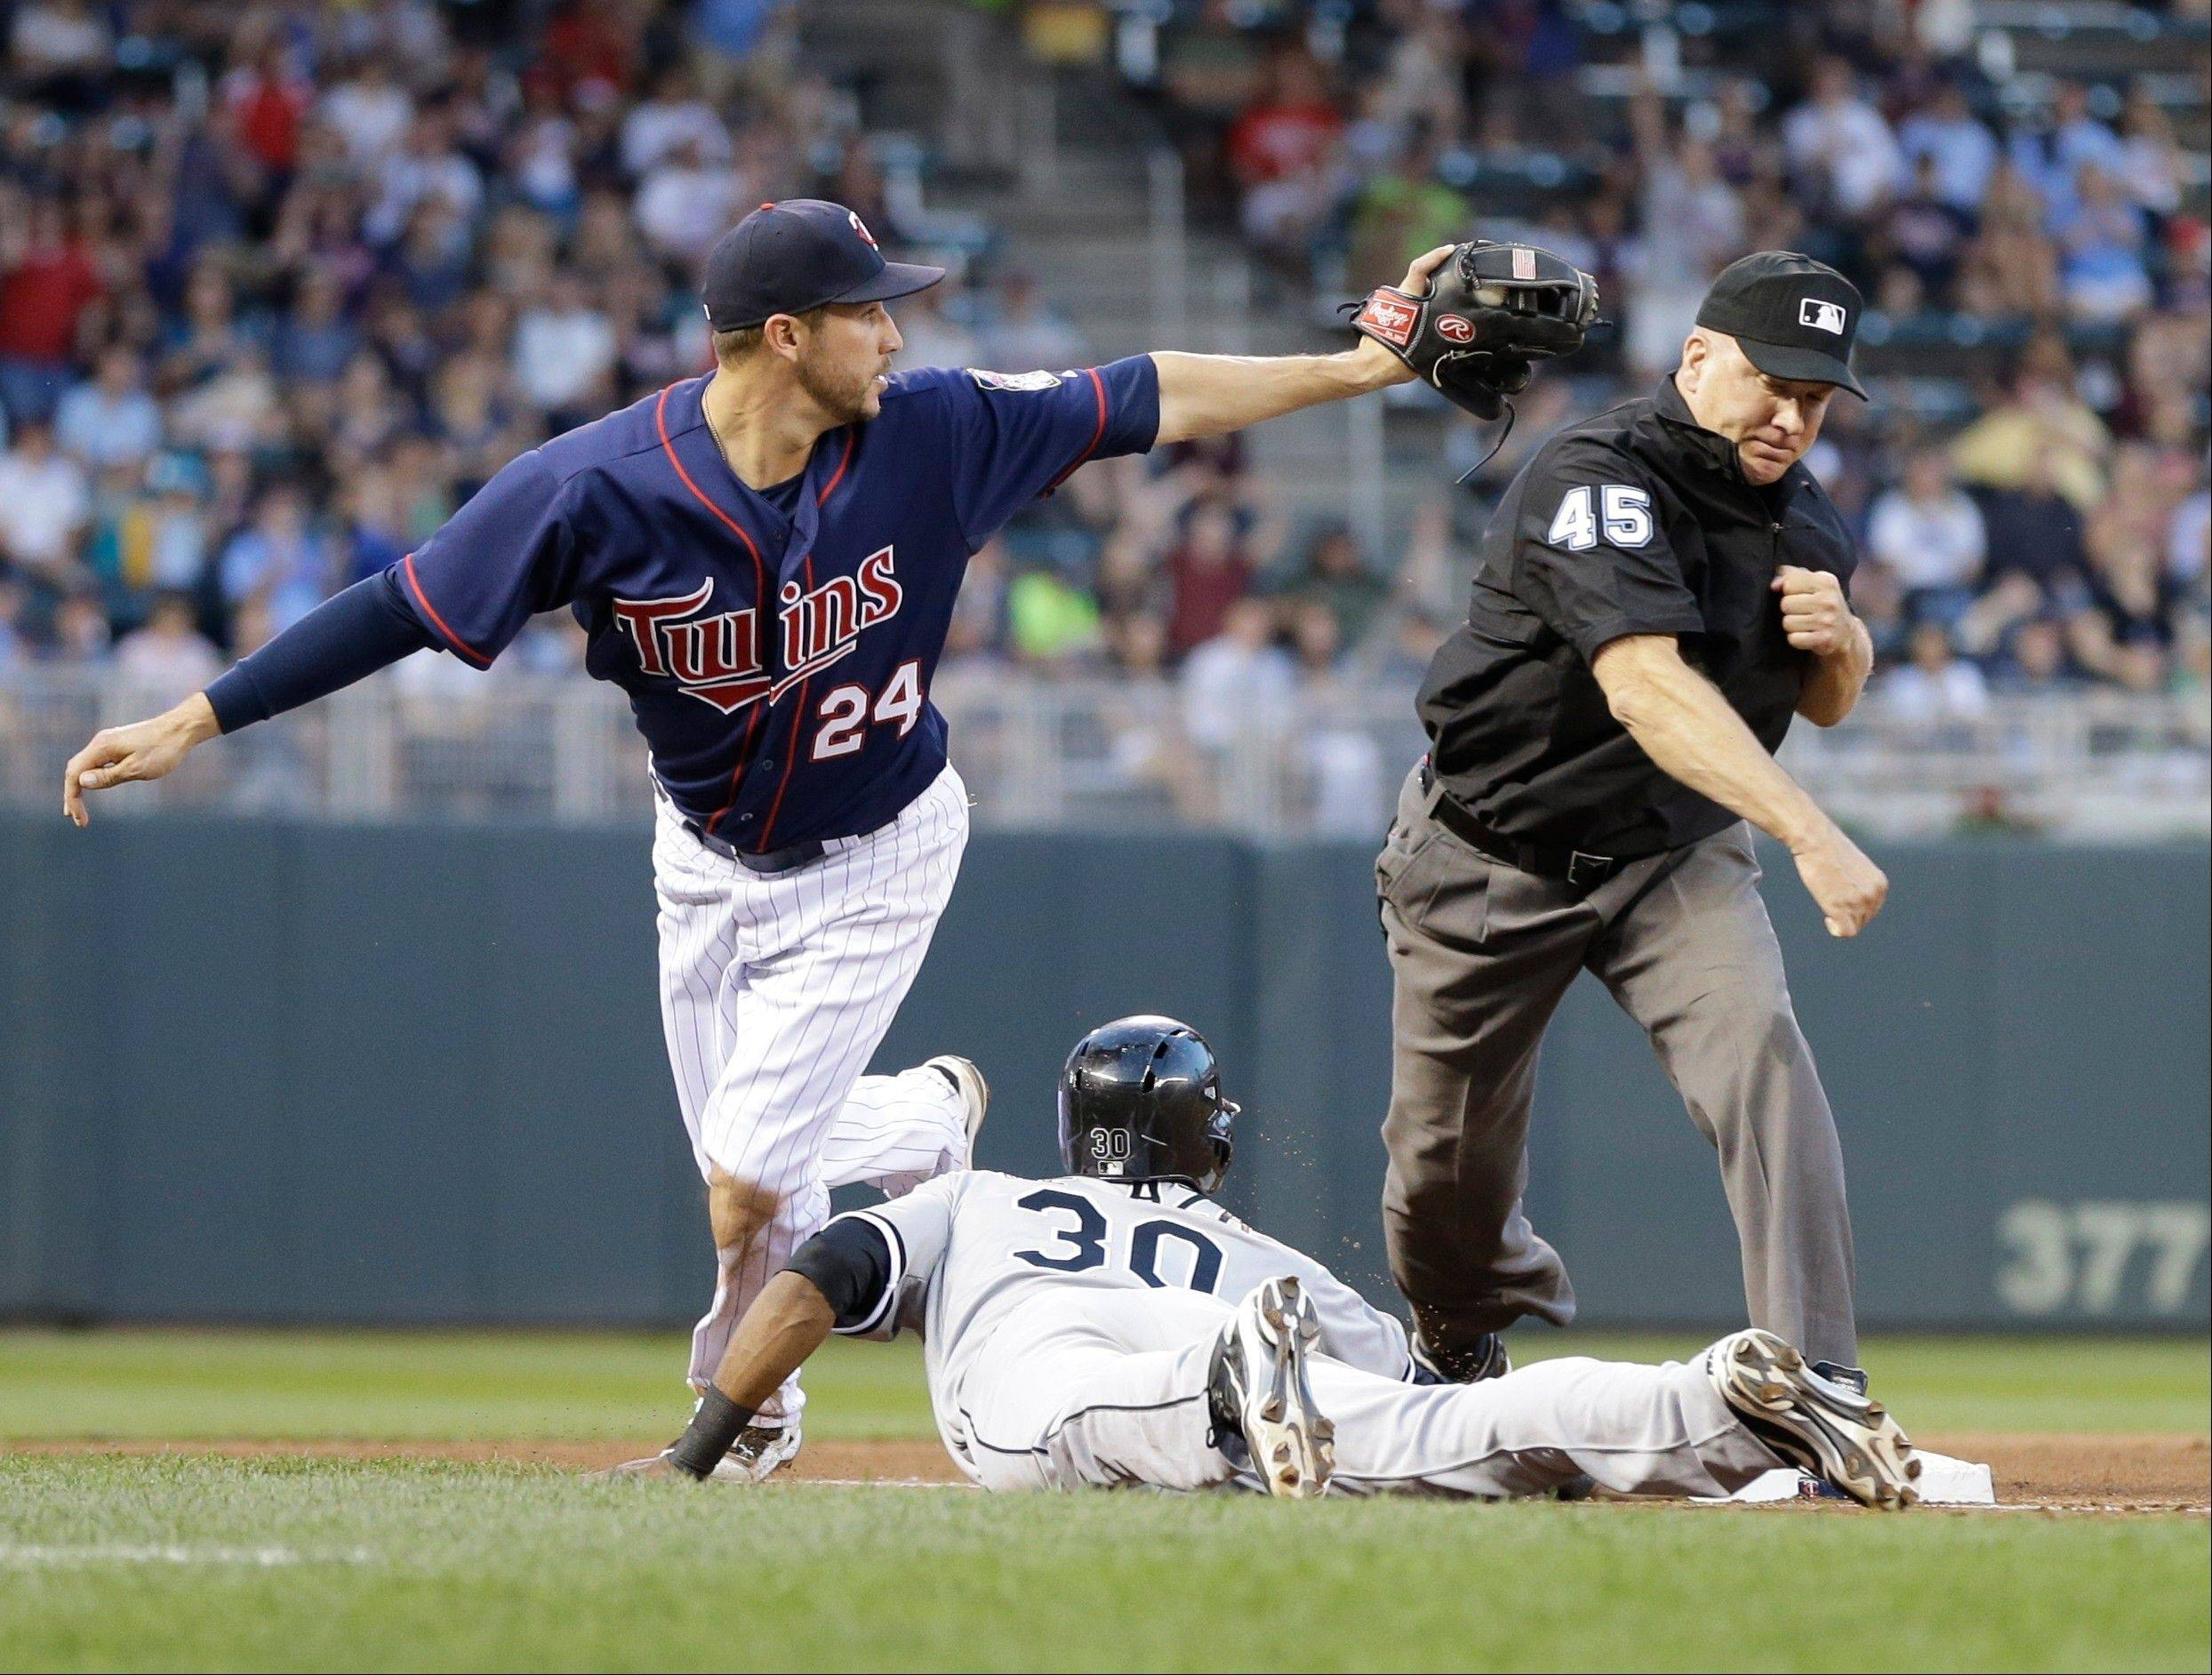 Third base umpire John Tumpane, right, calls the out on Chicago White Sox' Alejandro De Aza who was picked off third by Minnesota Twins third baseman Trevor Plouffe Tuesday night in Minneapolis.